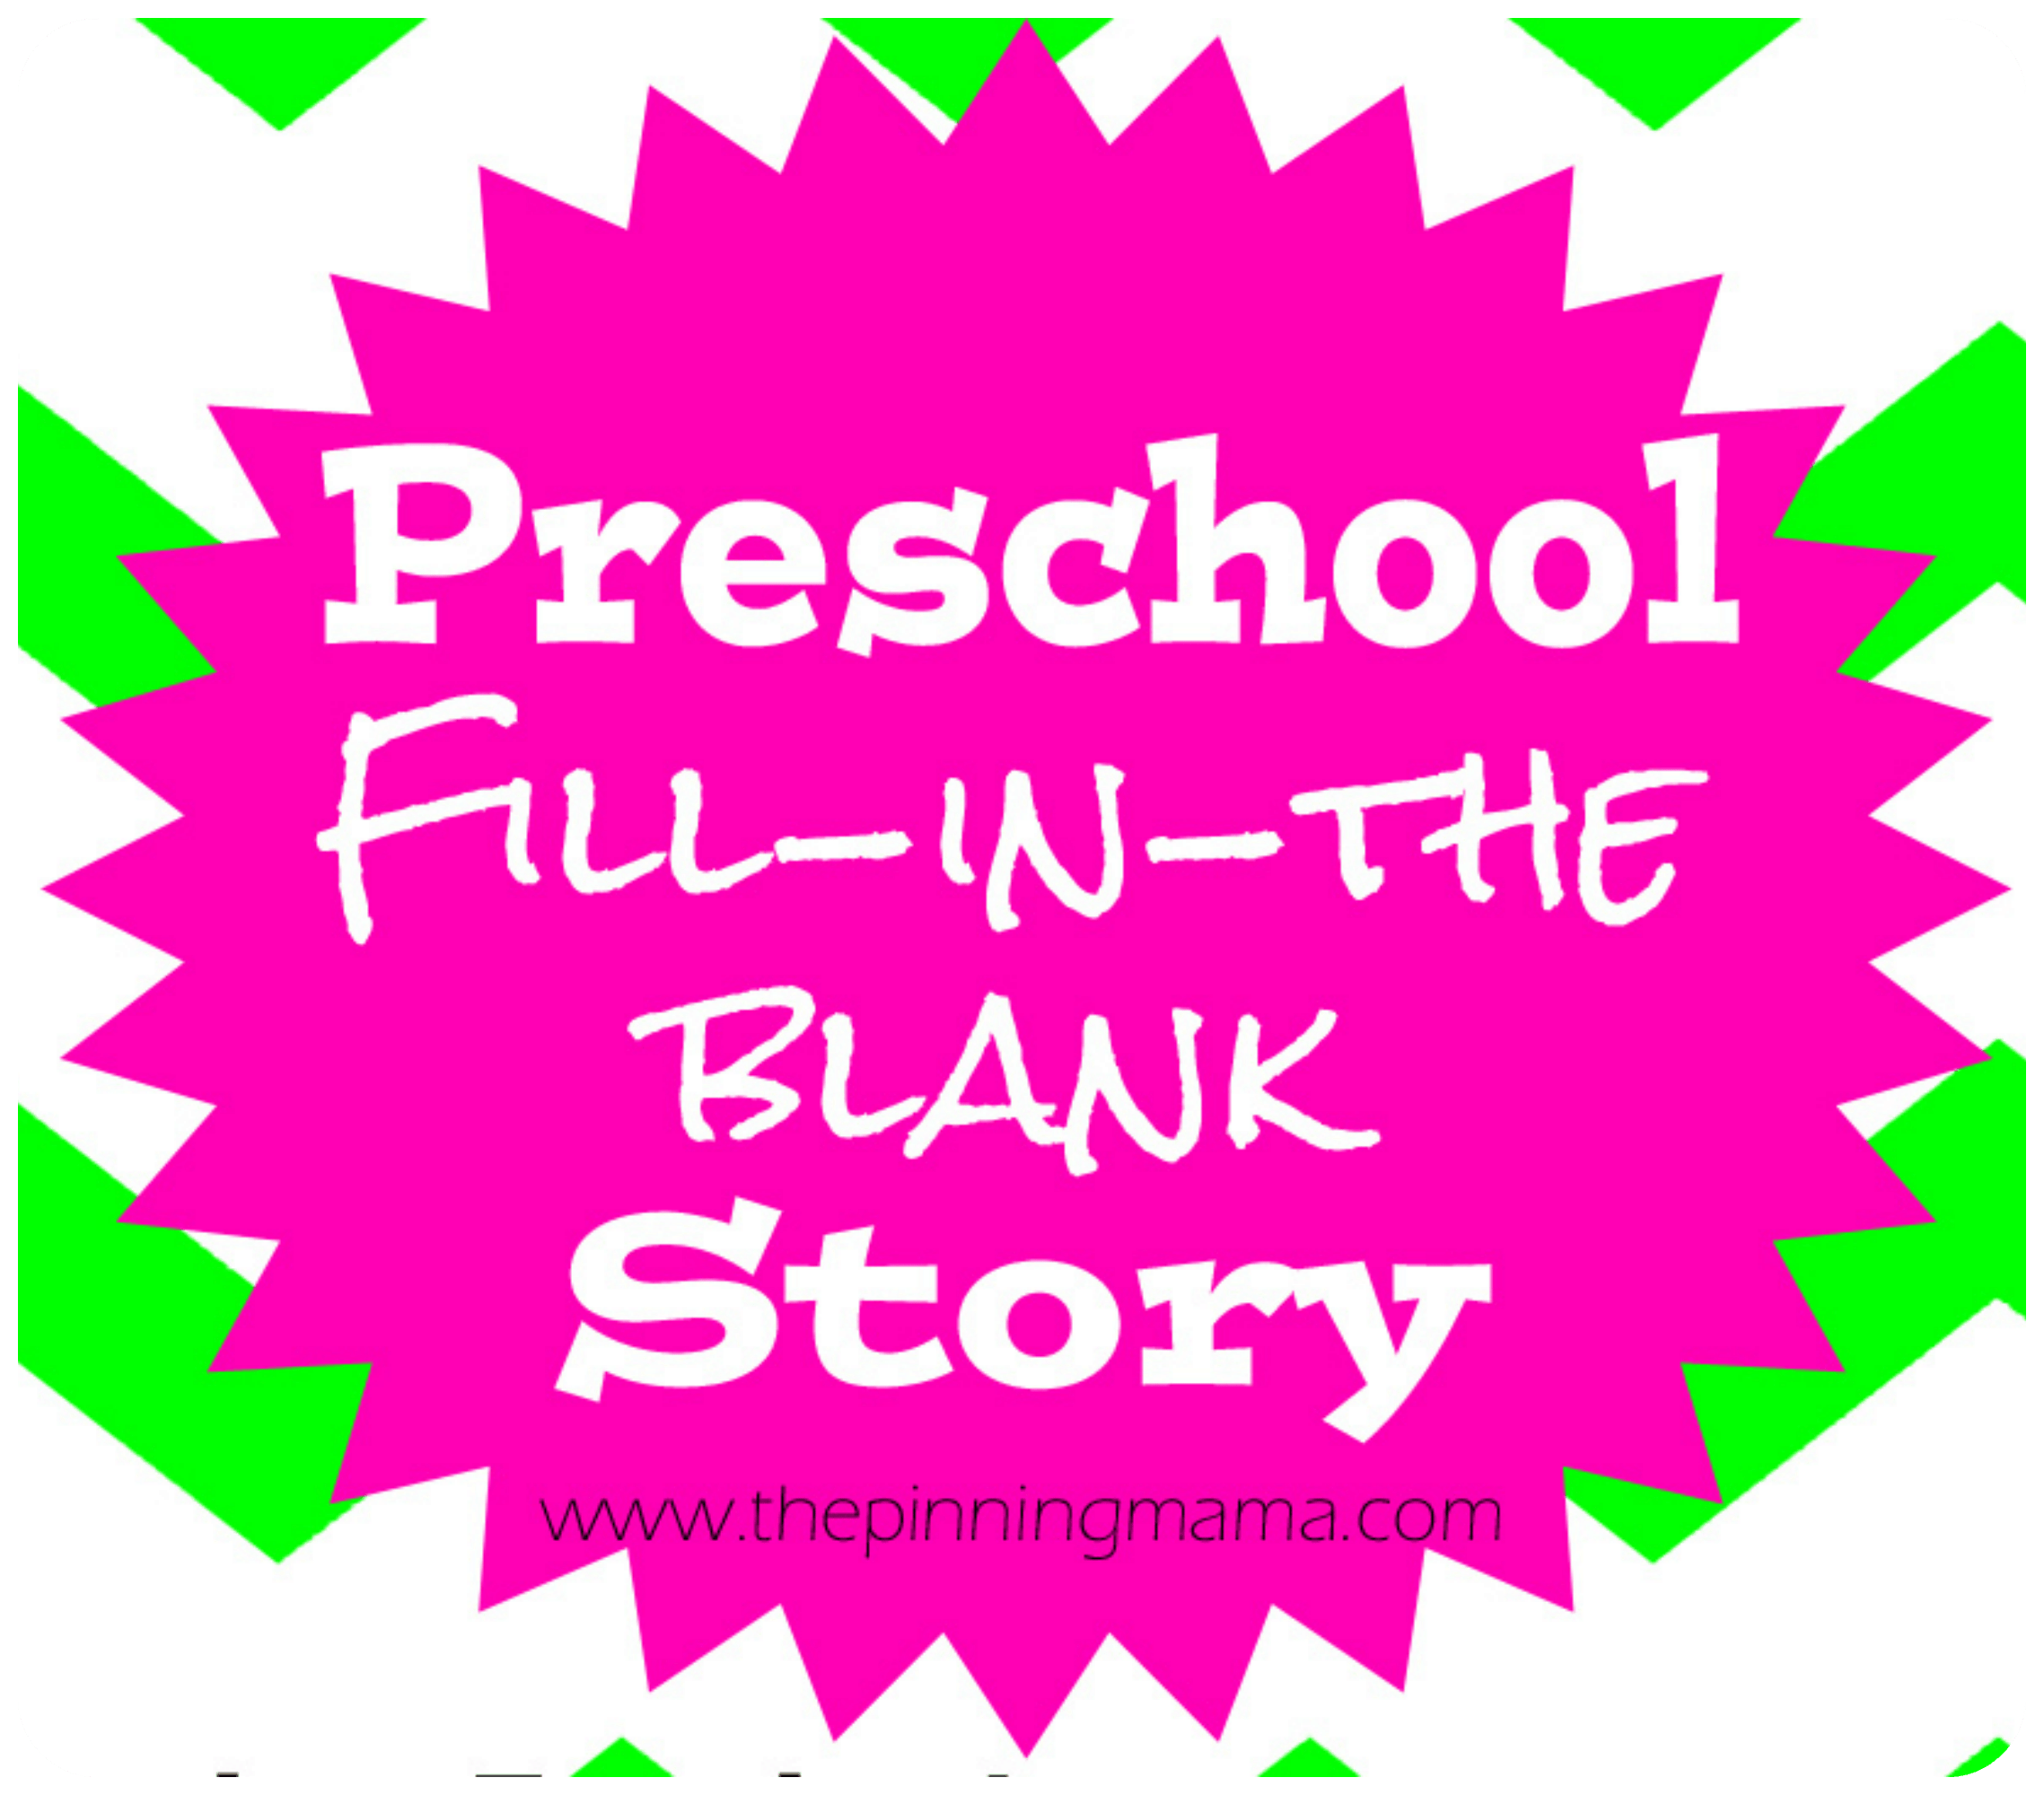 mad libs style story for preschoolers by wwwthepinningmamacom